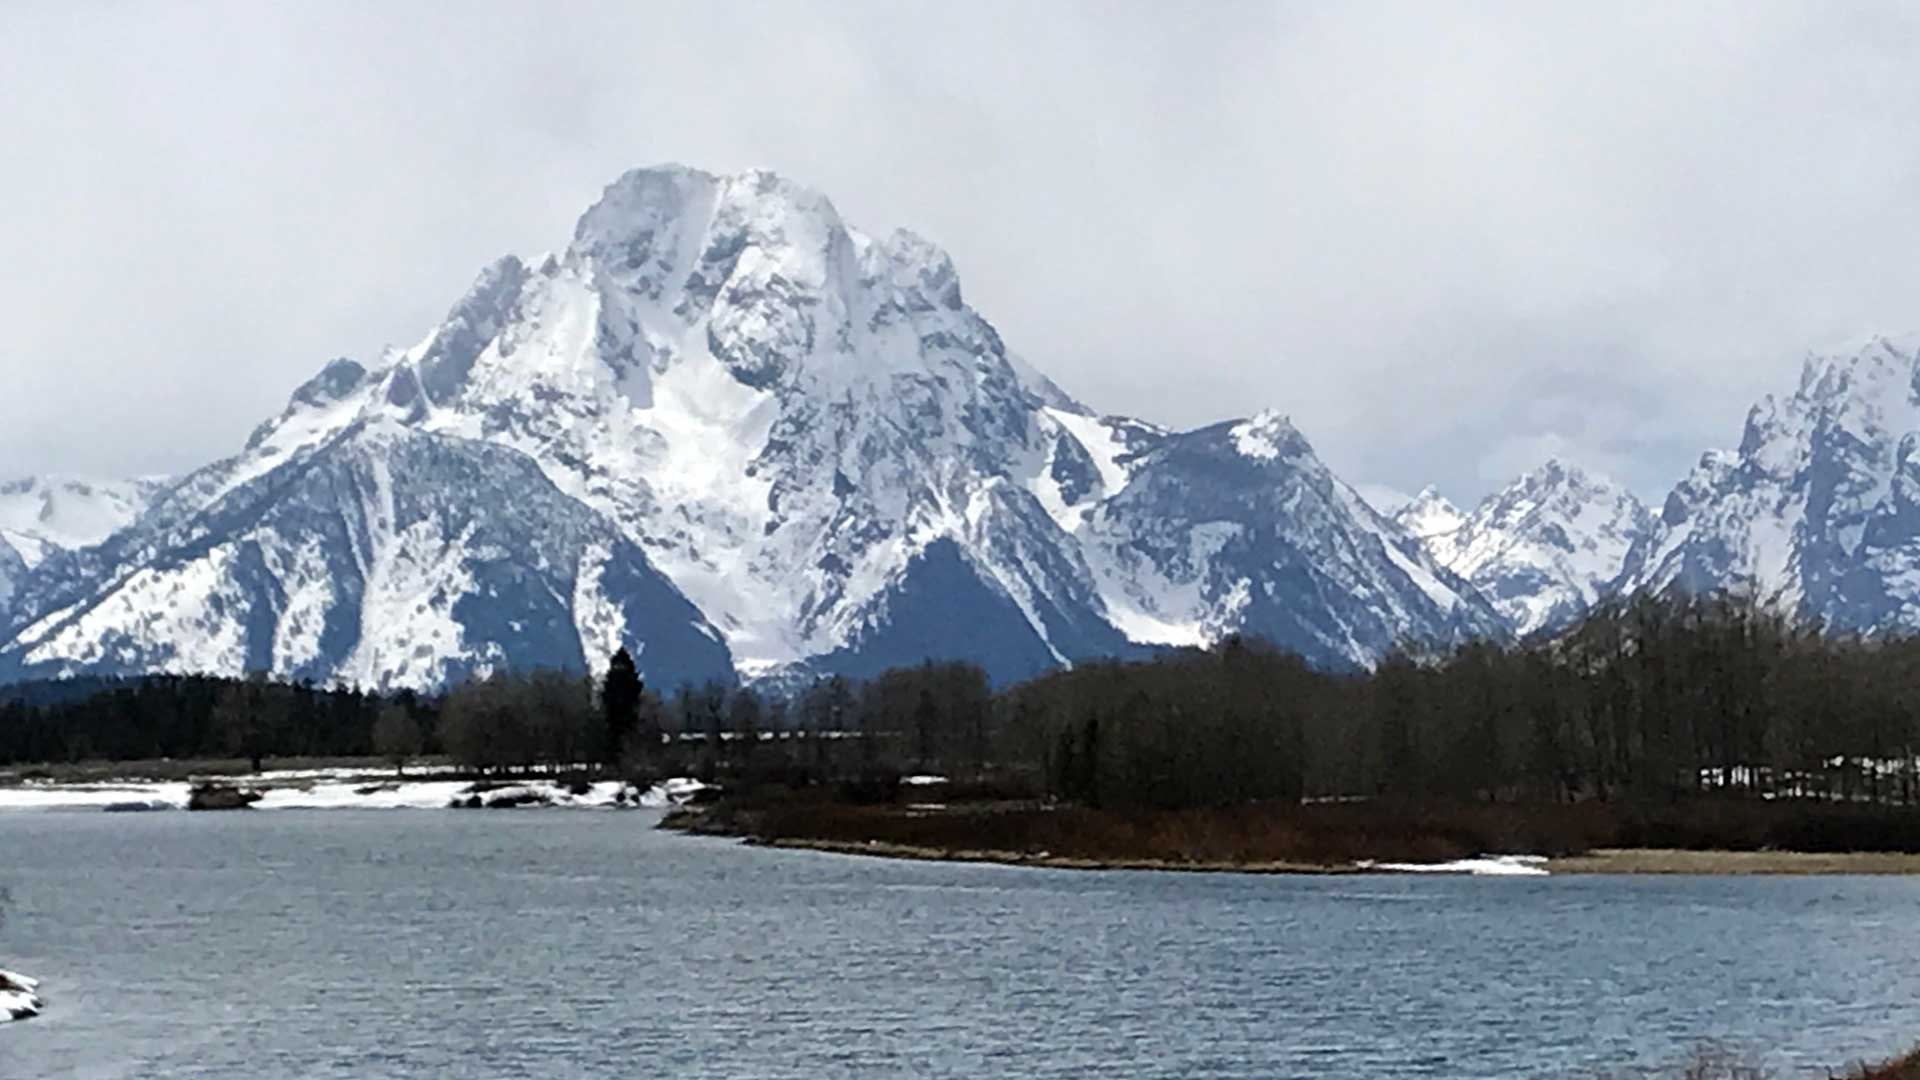 View of the Teton Range.